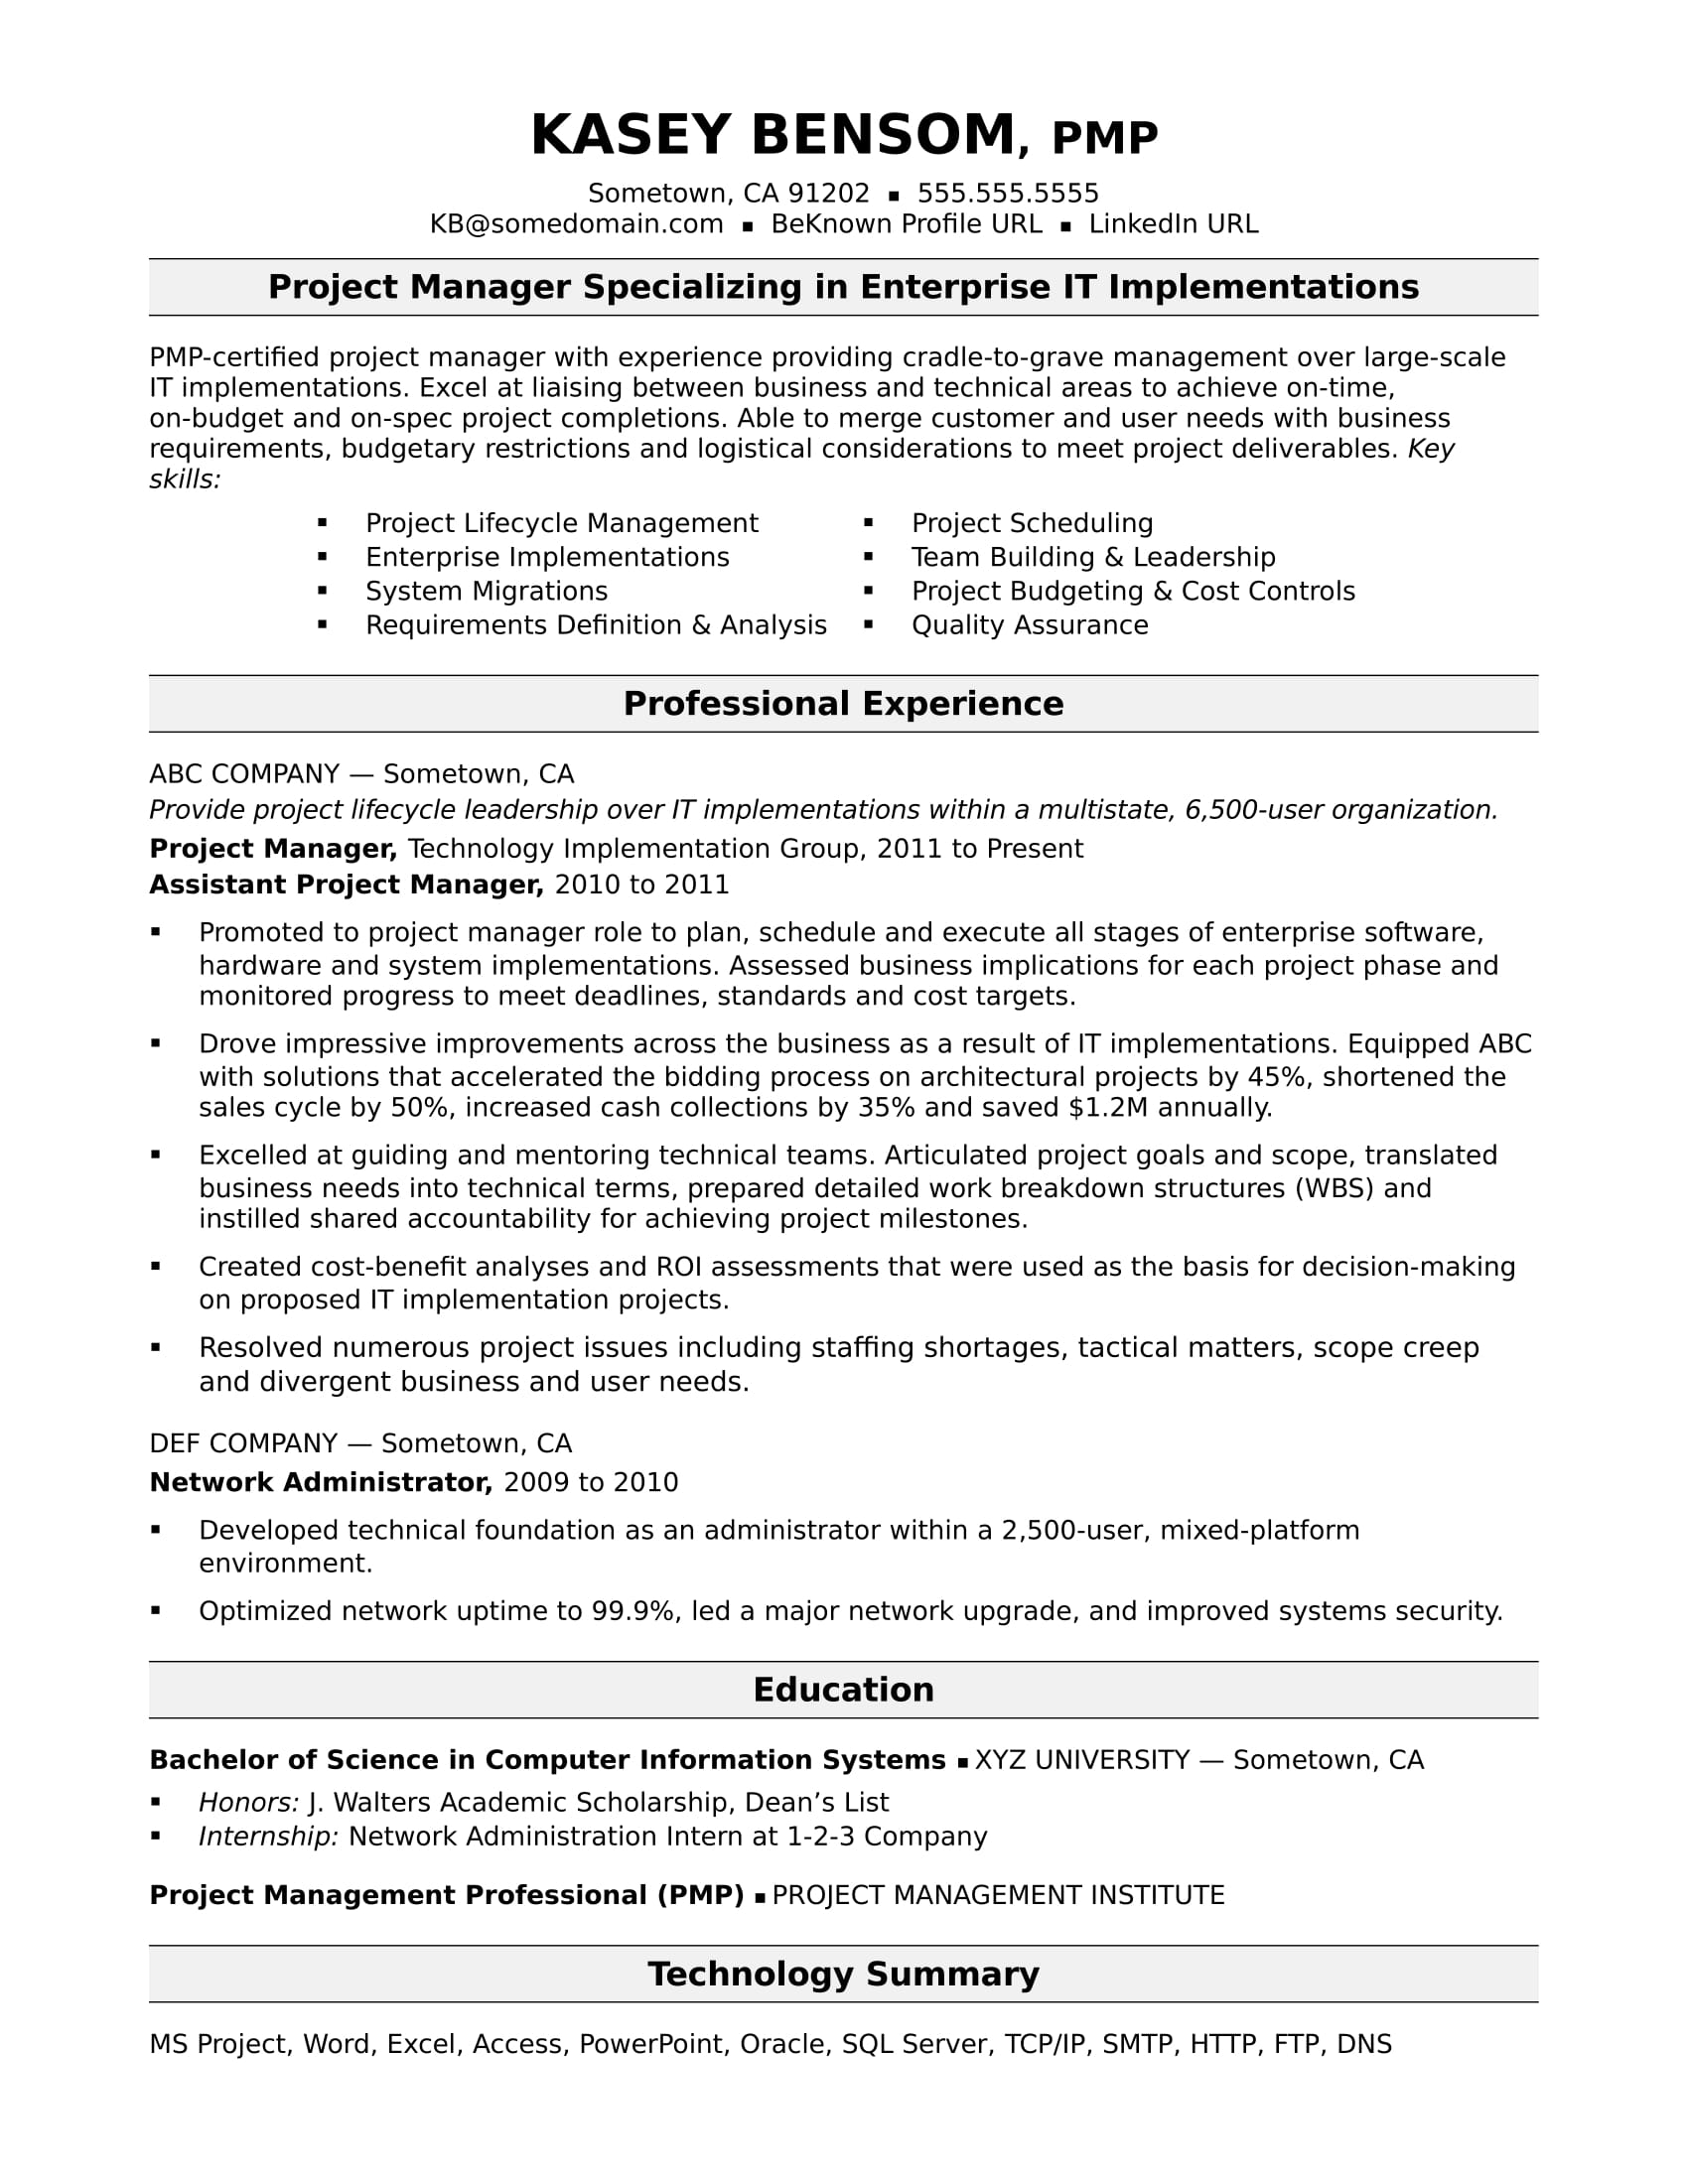 sample resume for midlevel it project manager monster summary examples technical comp sci Resume Project Manager Resume Summary Examples